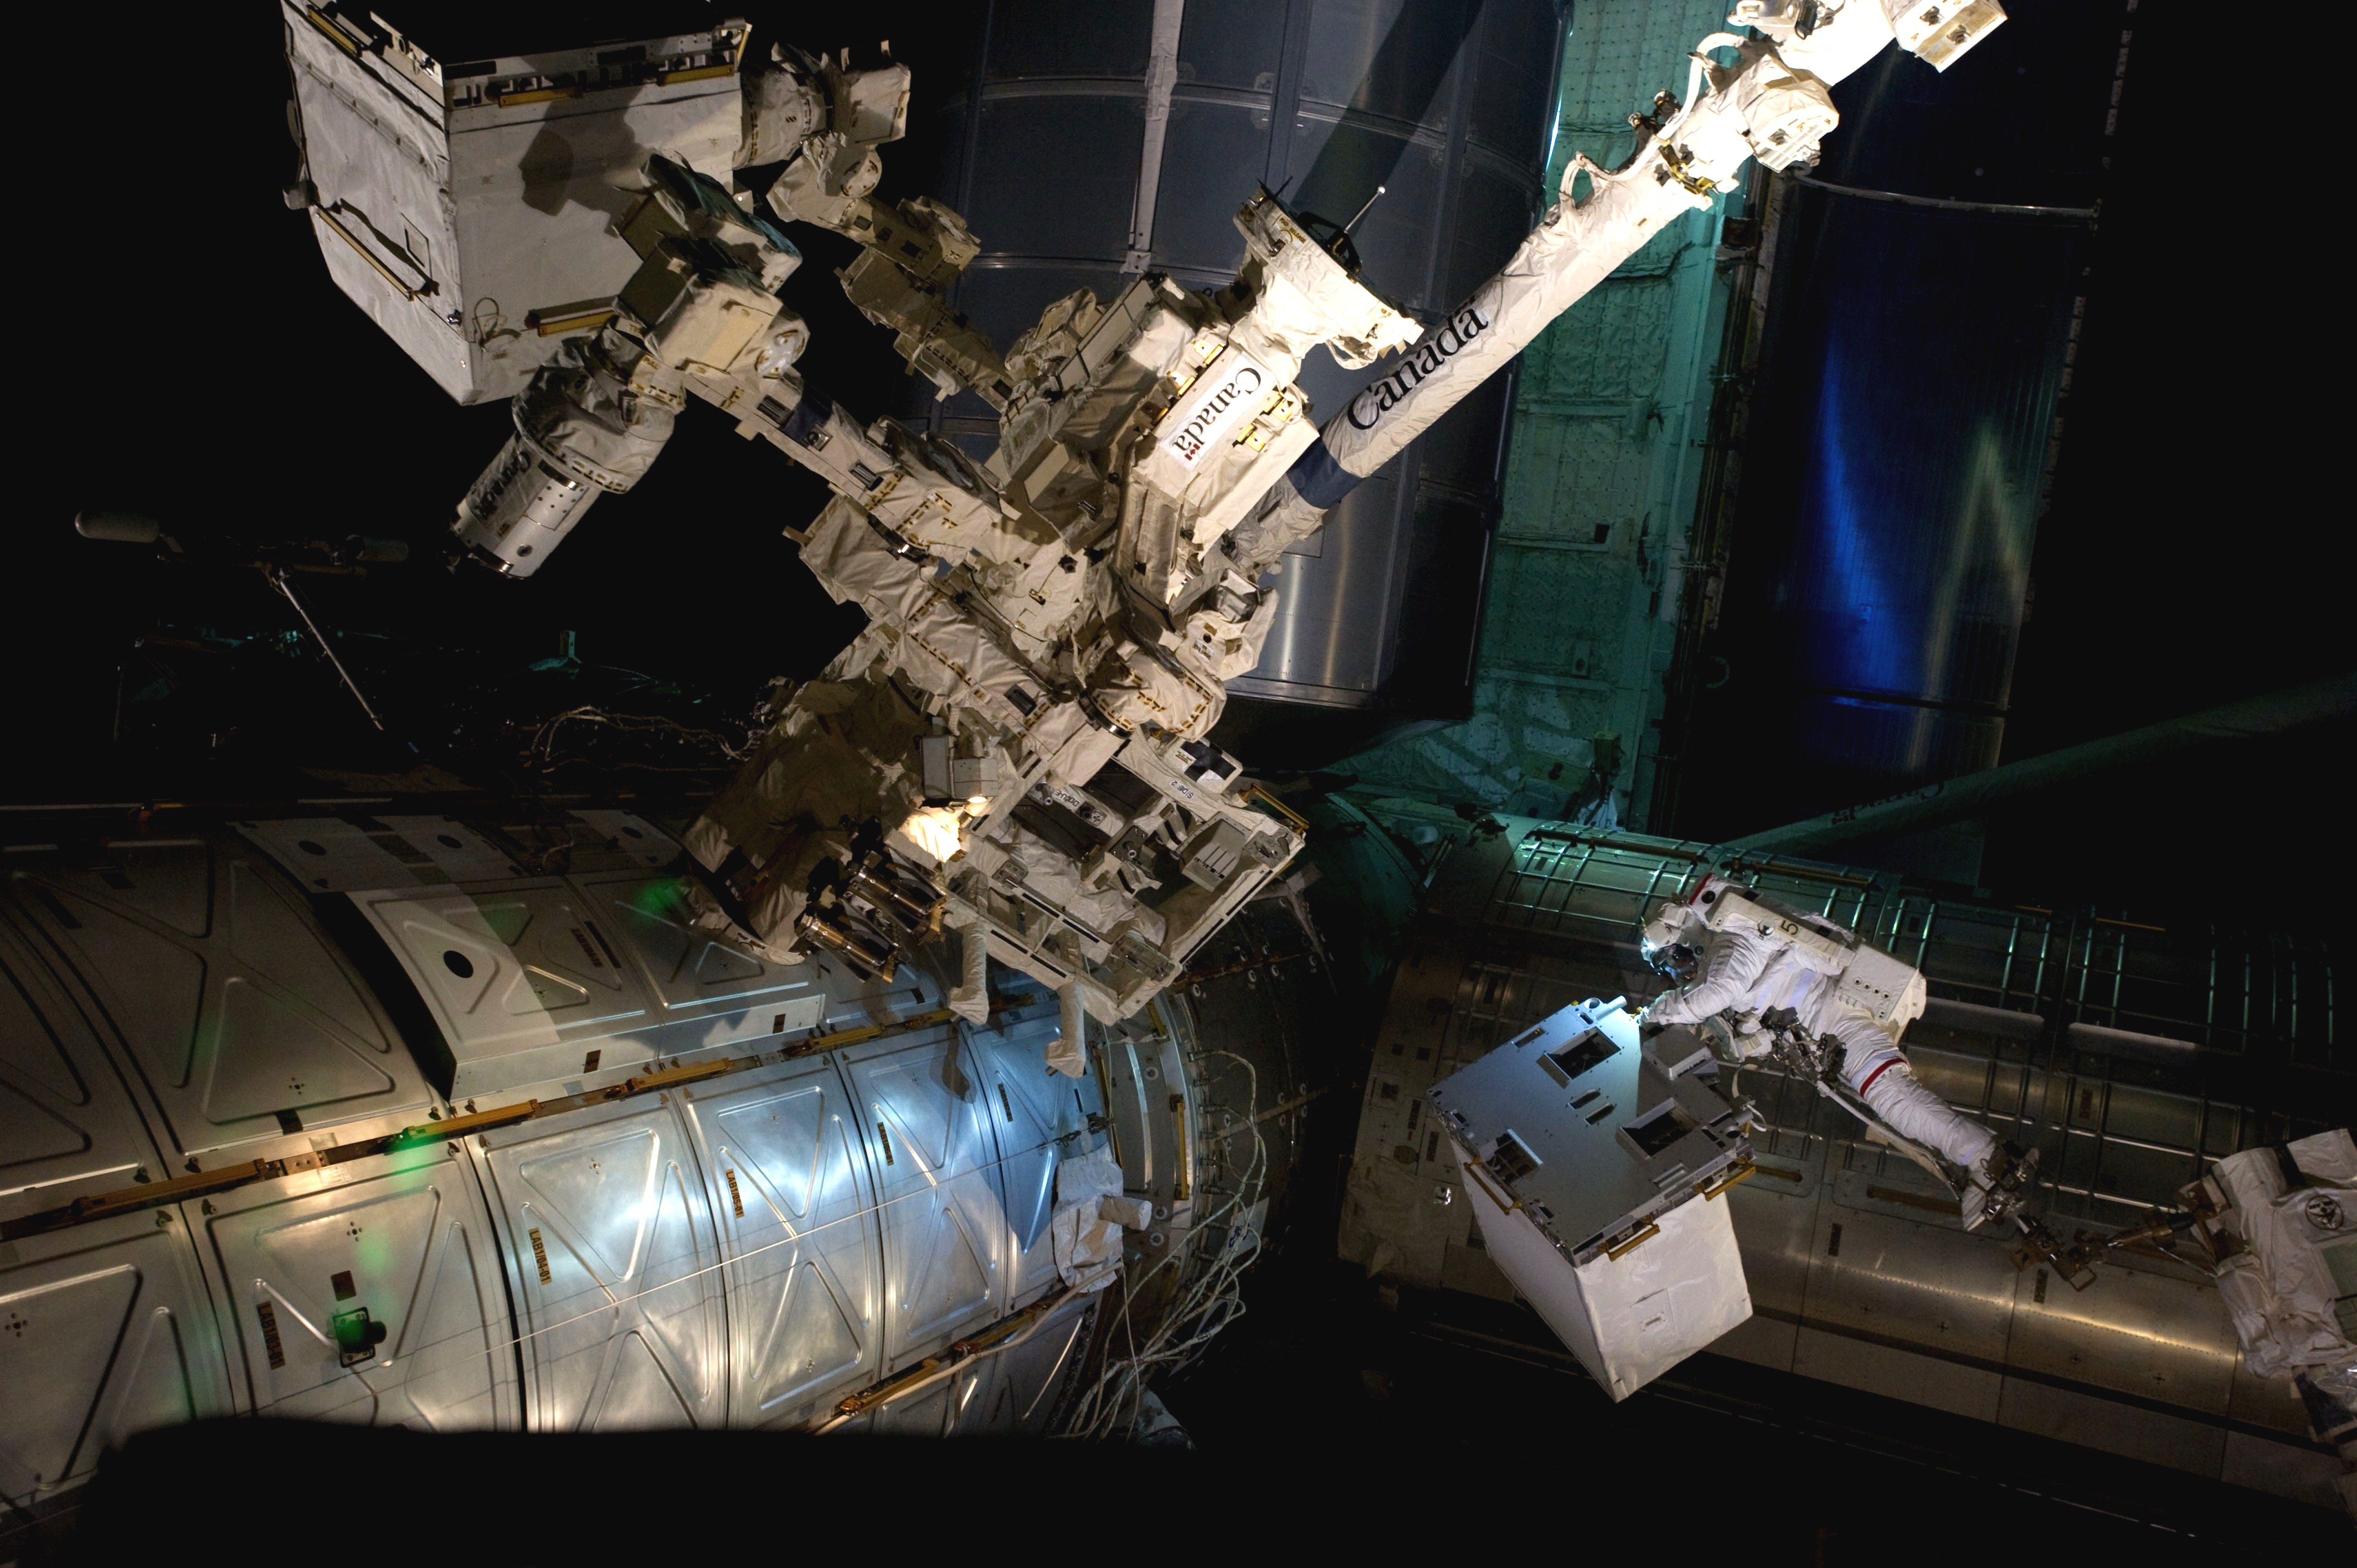 nasa space station robot - photo #17